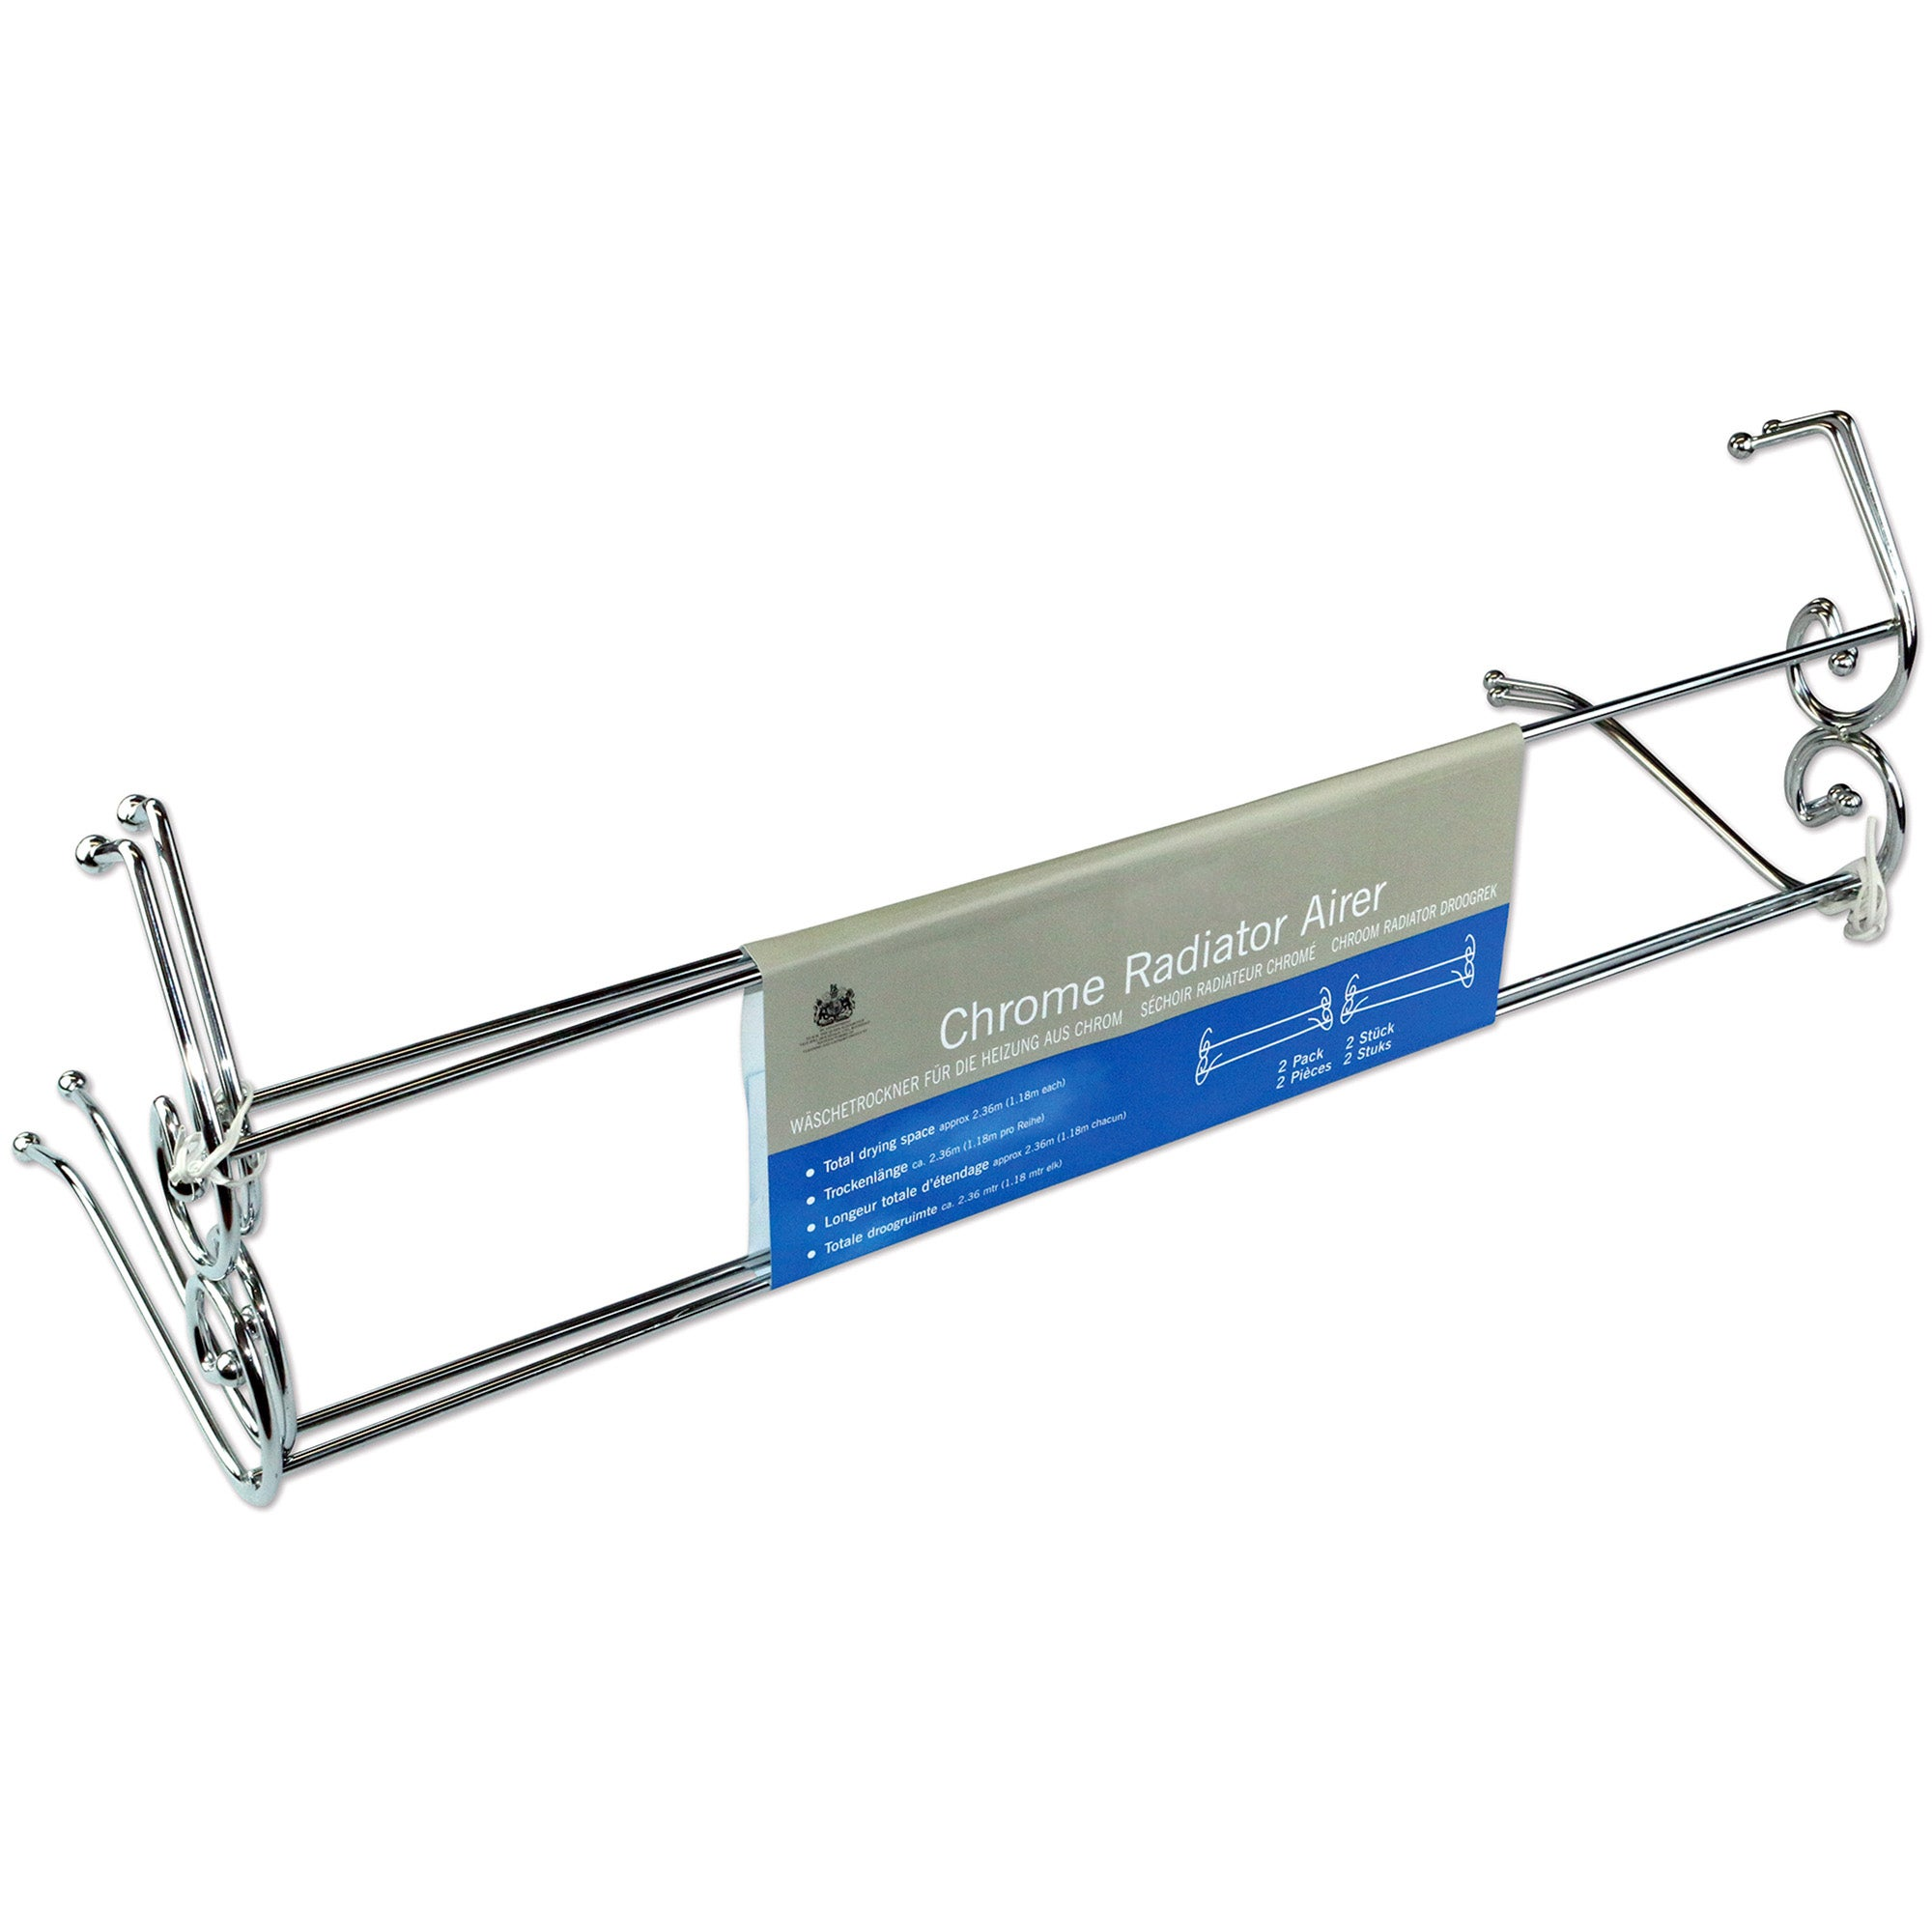 Chrome Radiator Airer